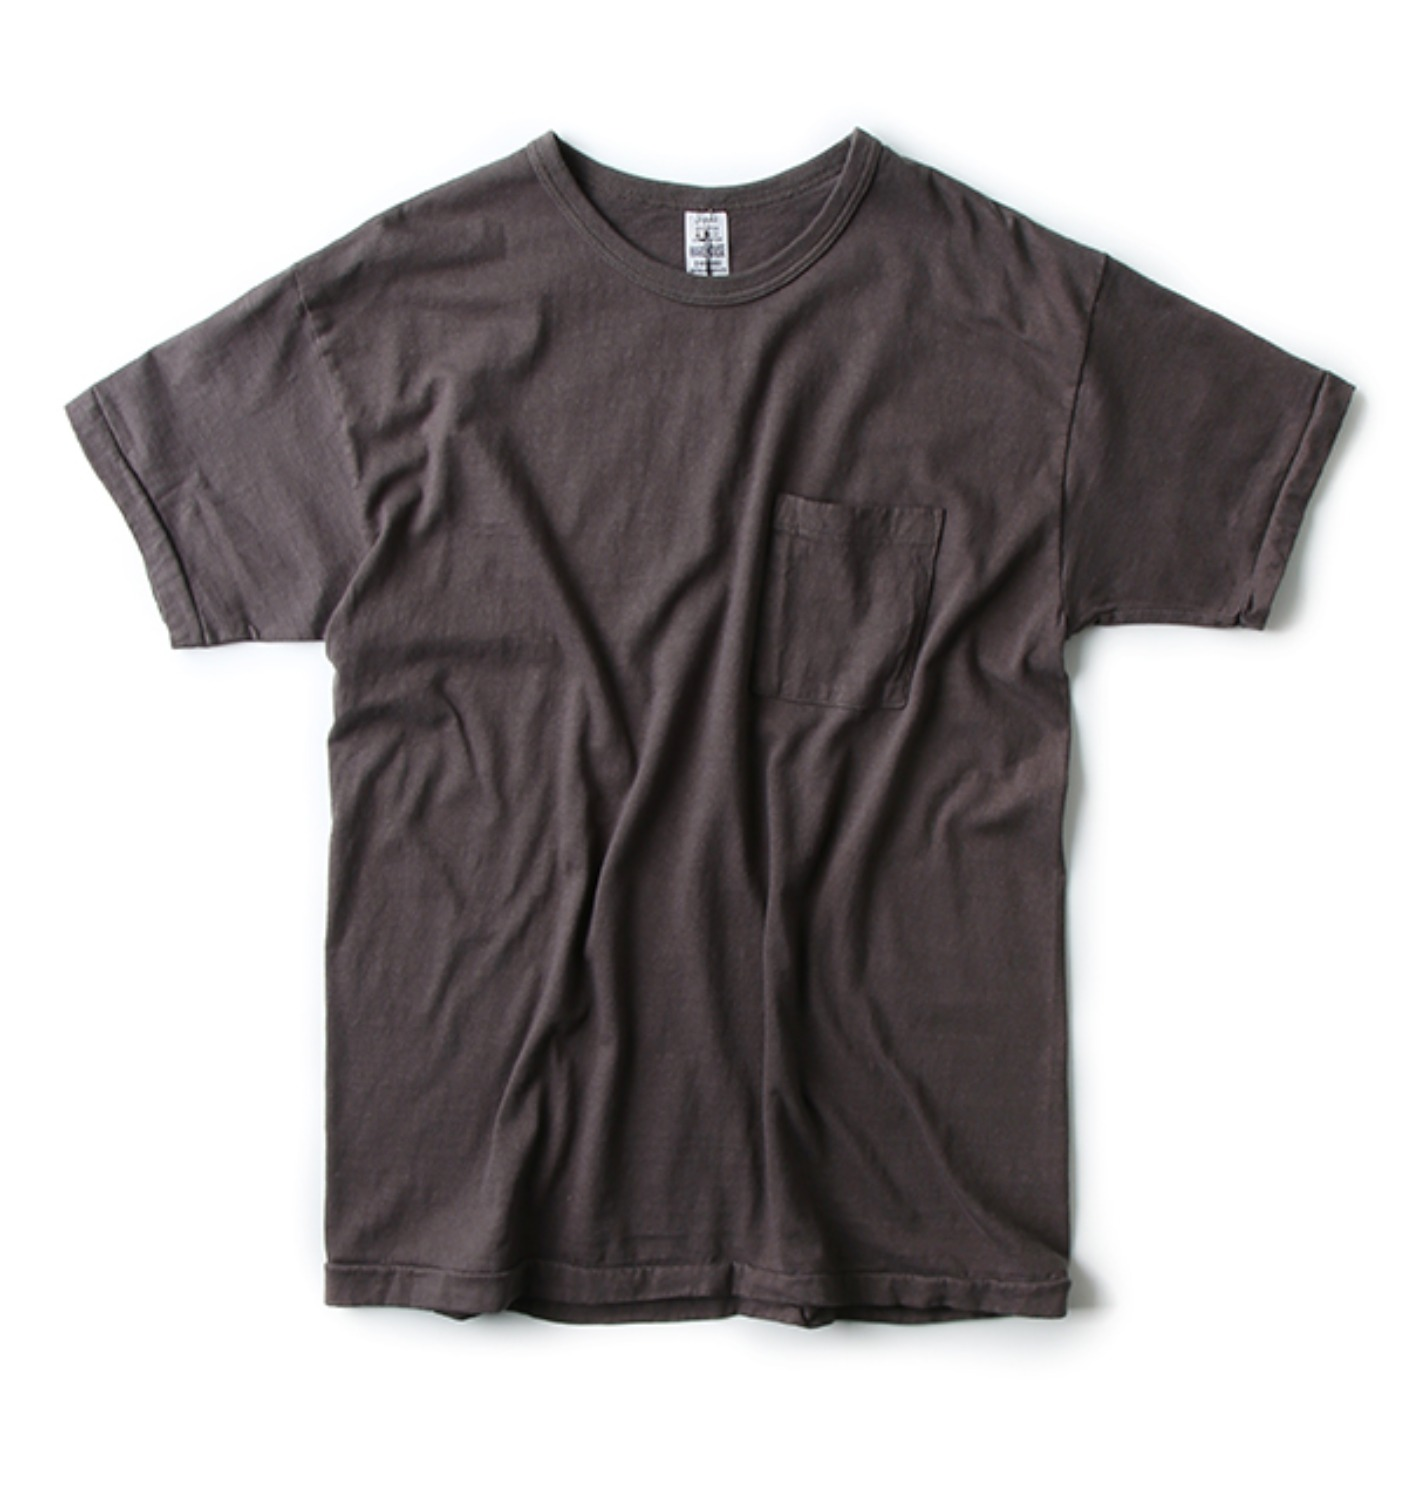 LOT 4065 PATCH POCKET T CHARCOAL